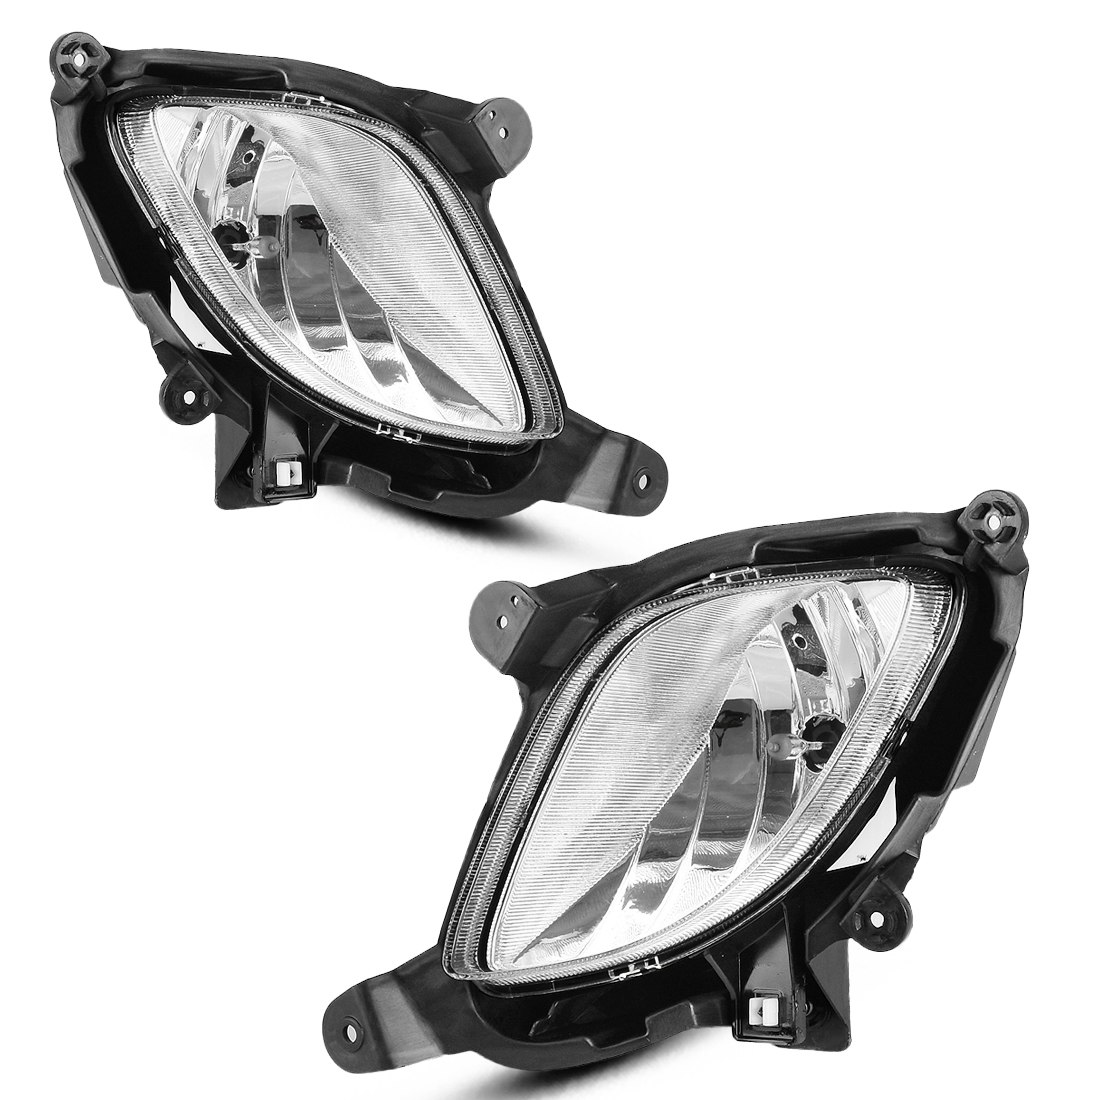 hight resolution of for 2010 2012 hyundai genesis coupe clear bumper fog light lamps w wiring switch 1 year warranty walmart com